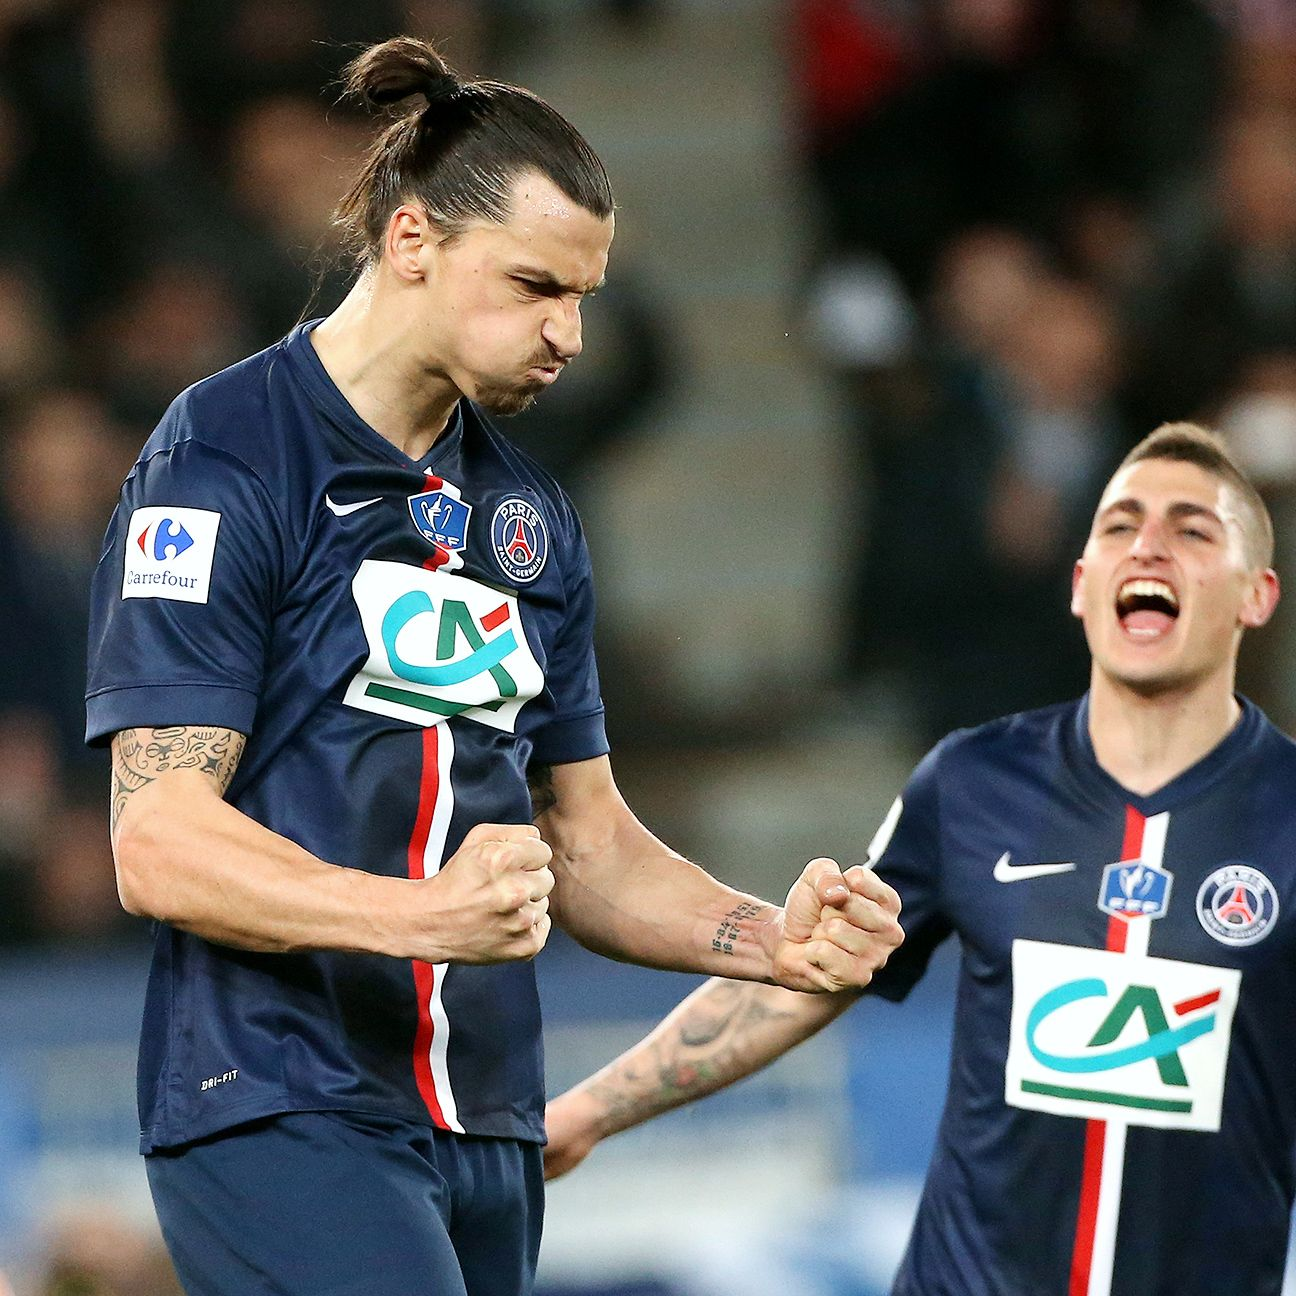 With Zlatan Ibrahimovic and Marco Verratti back in the fold, PSG's attack should pose more of a threat against Barcelona.